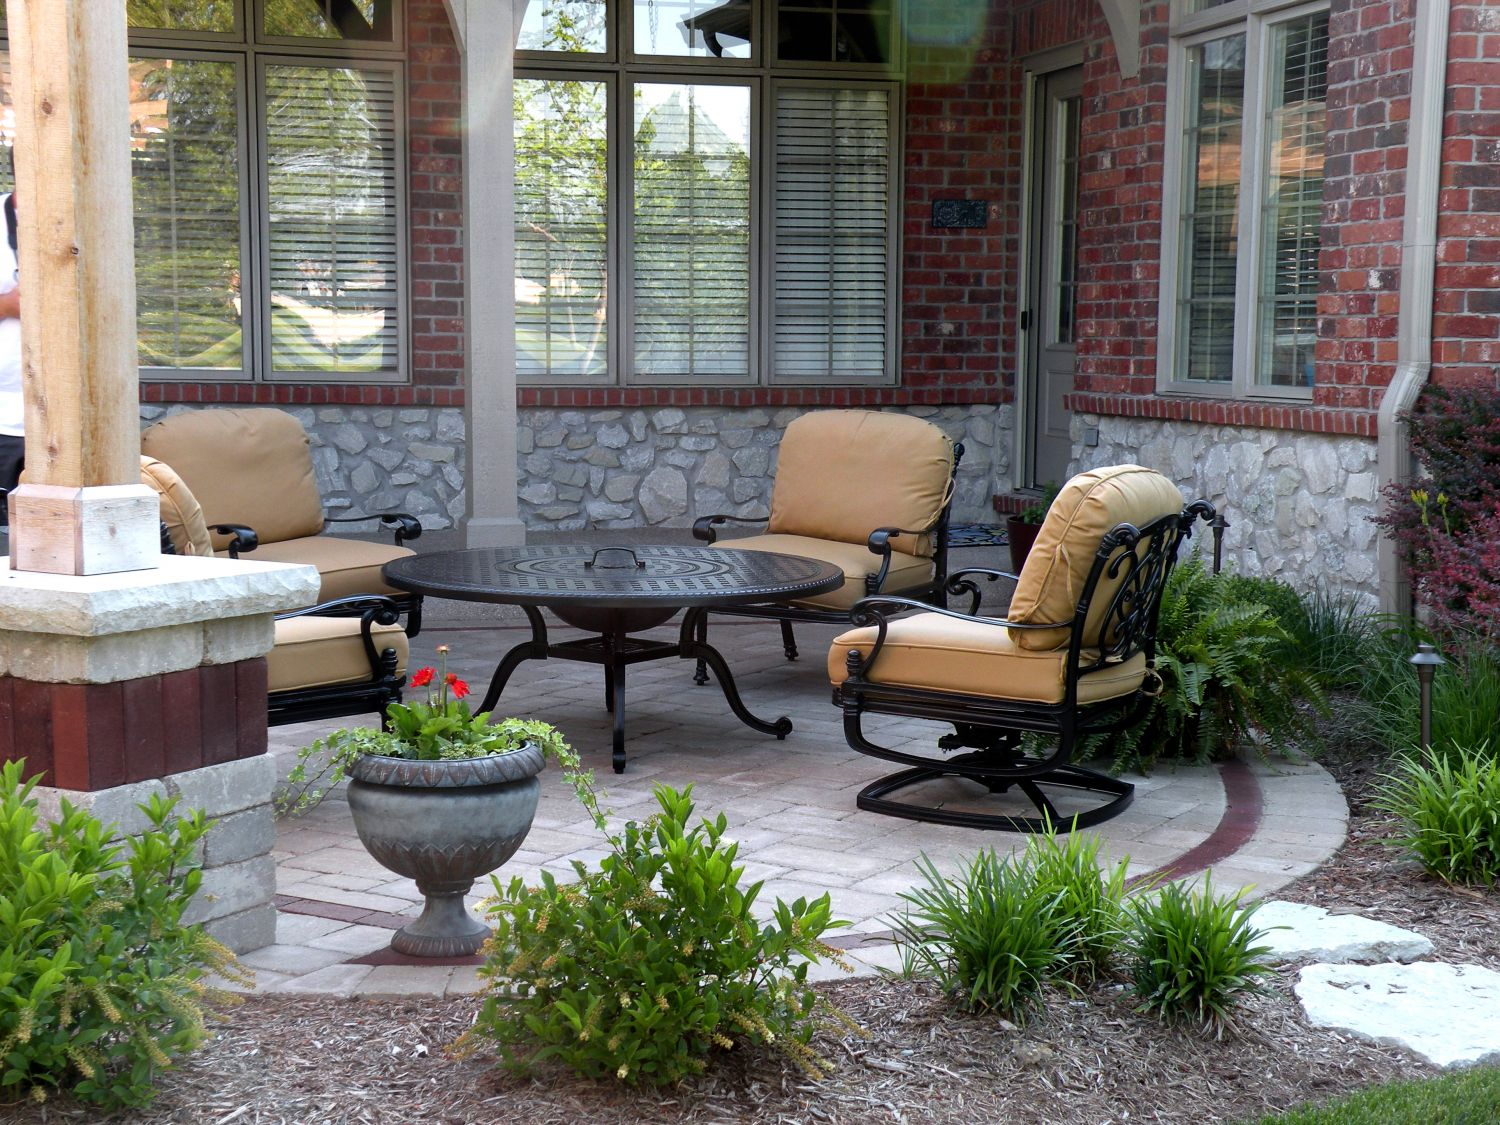 Mesquite TX Professional Landscapers & Outdoor Living Designs Home Page Image-We offer Landscape Design, Outdoor Patios & Pergolas, Outdoor Living Spaces, Stonescapes, Residential & Commercial Landscaping, Irrigation Installation & Repairs, Drainage Systems, Landscape Lighting, Outdoor Living Spaces, Tree Service, Lawn Service, and more.